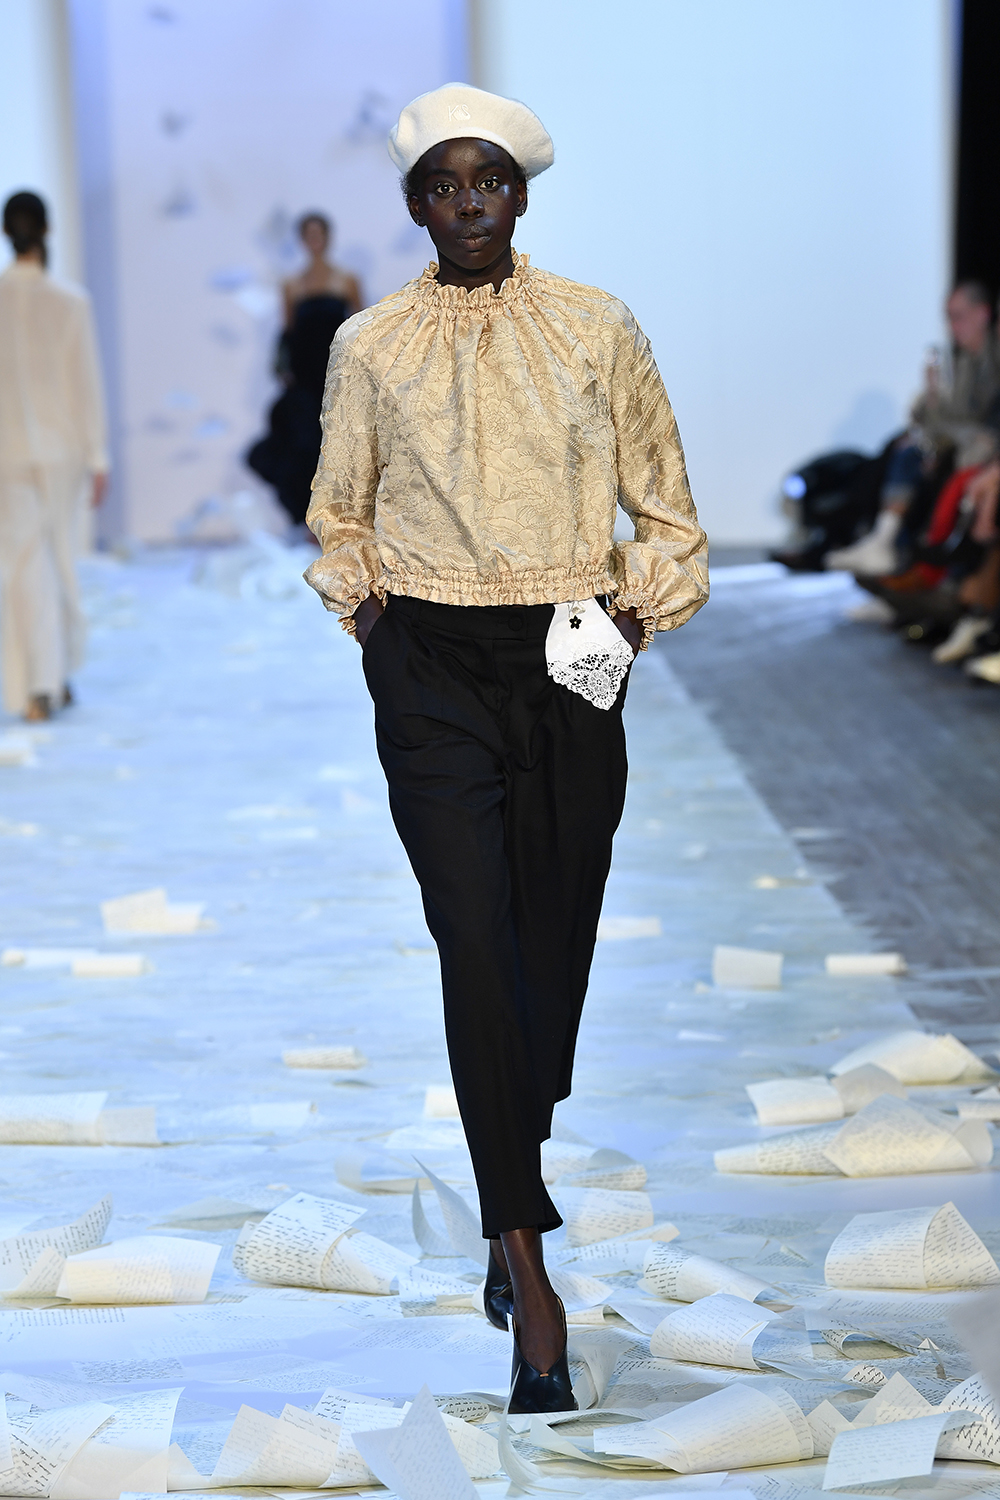 Ayan Makoii at Kate Sylvester NZFW 2019